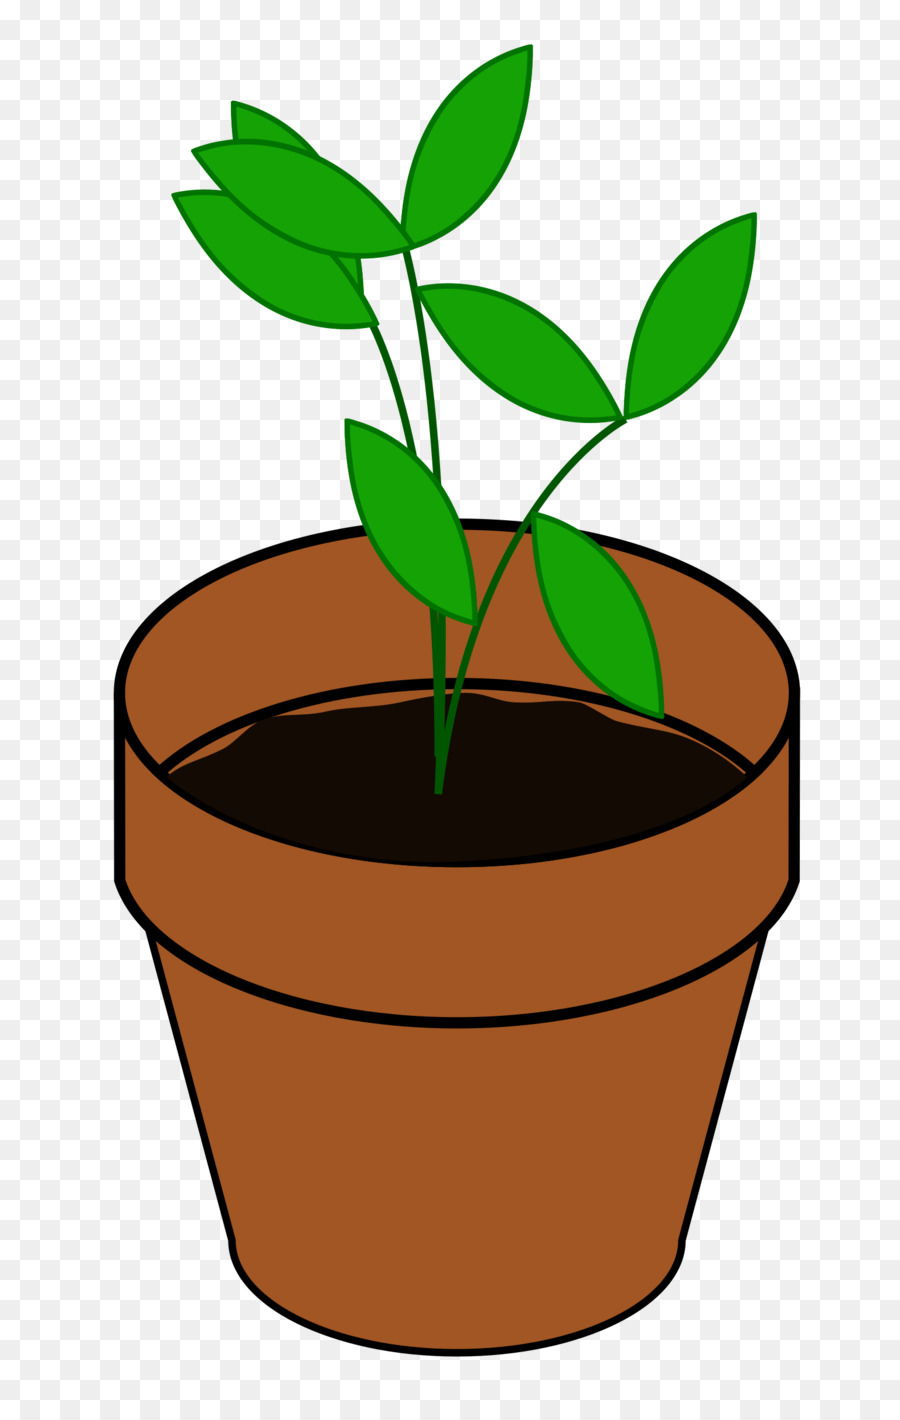 Plant cartoon. Tree clipart drawing plants